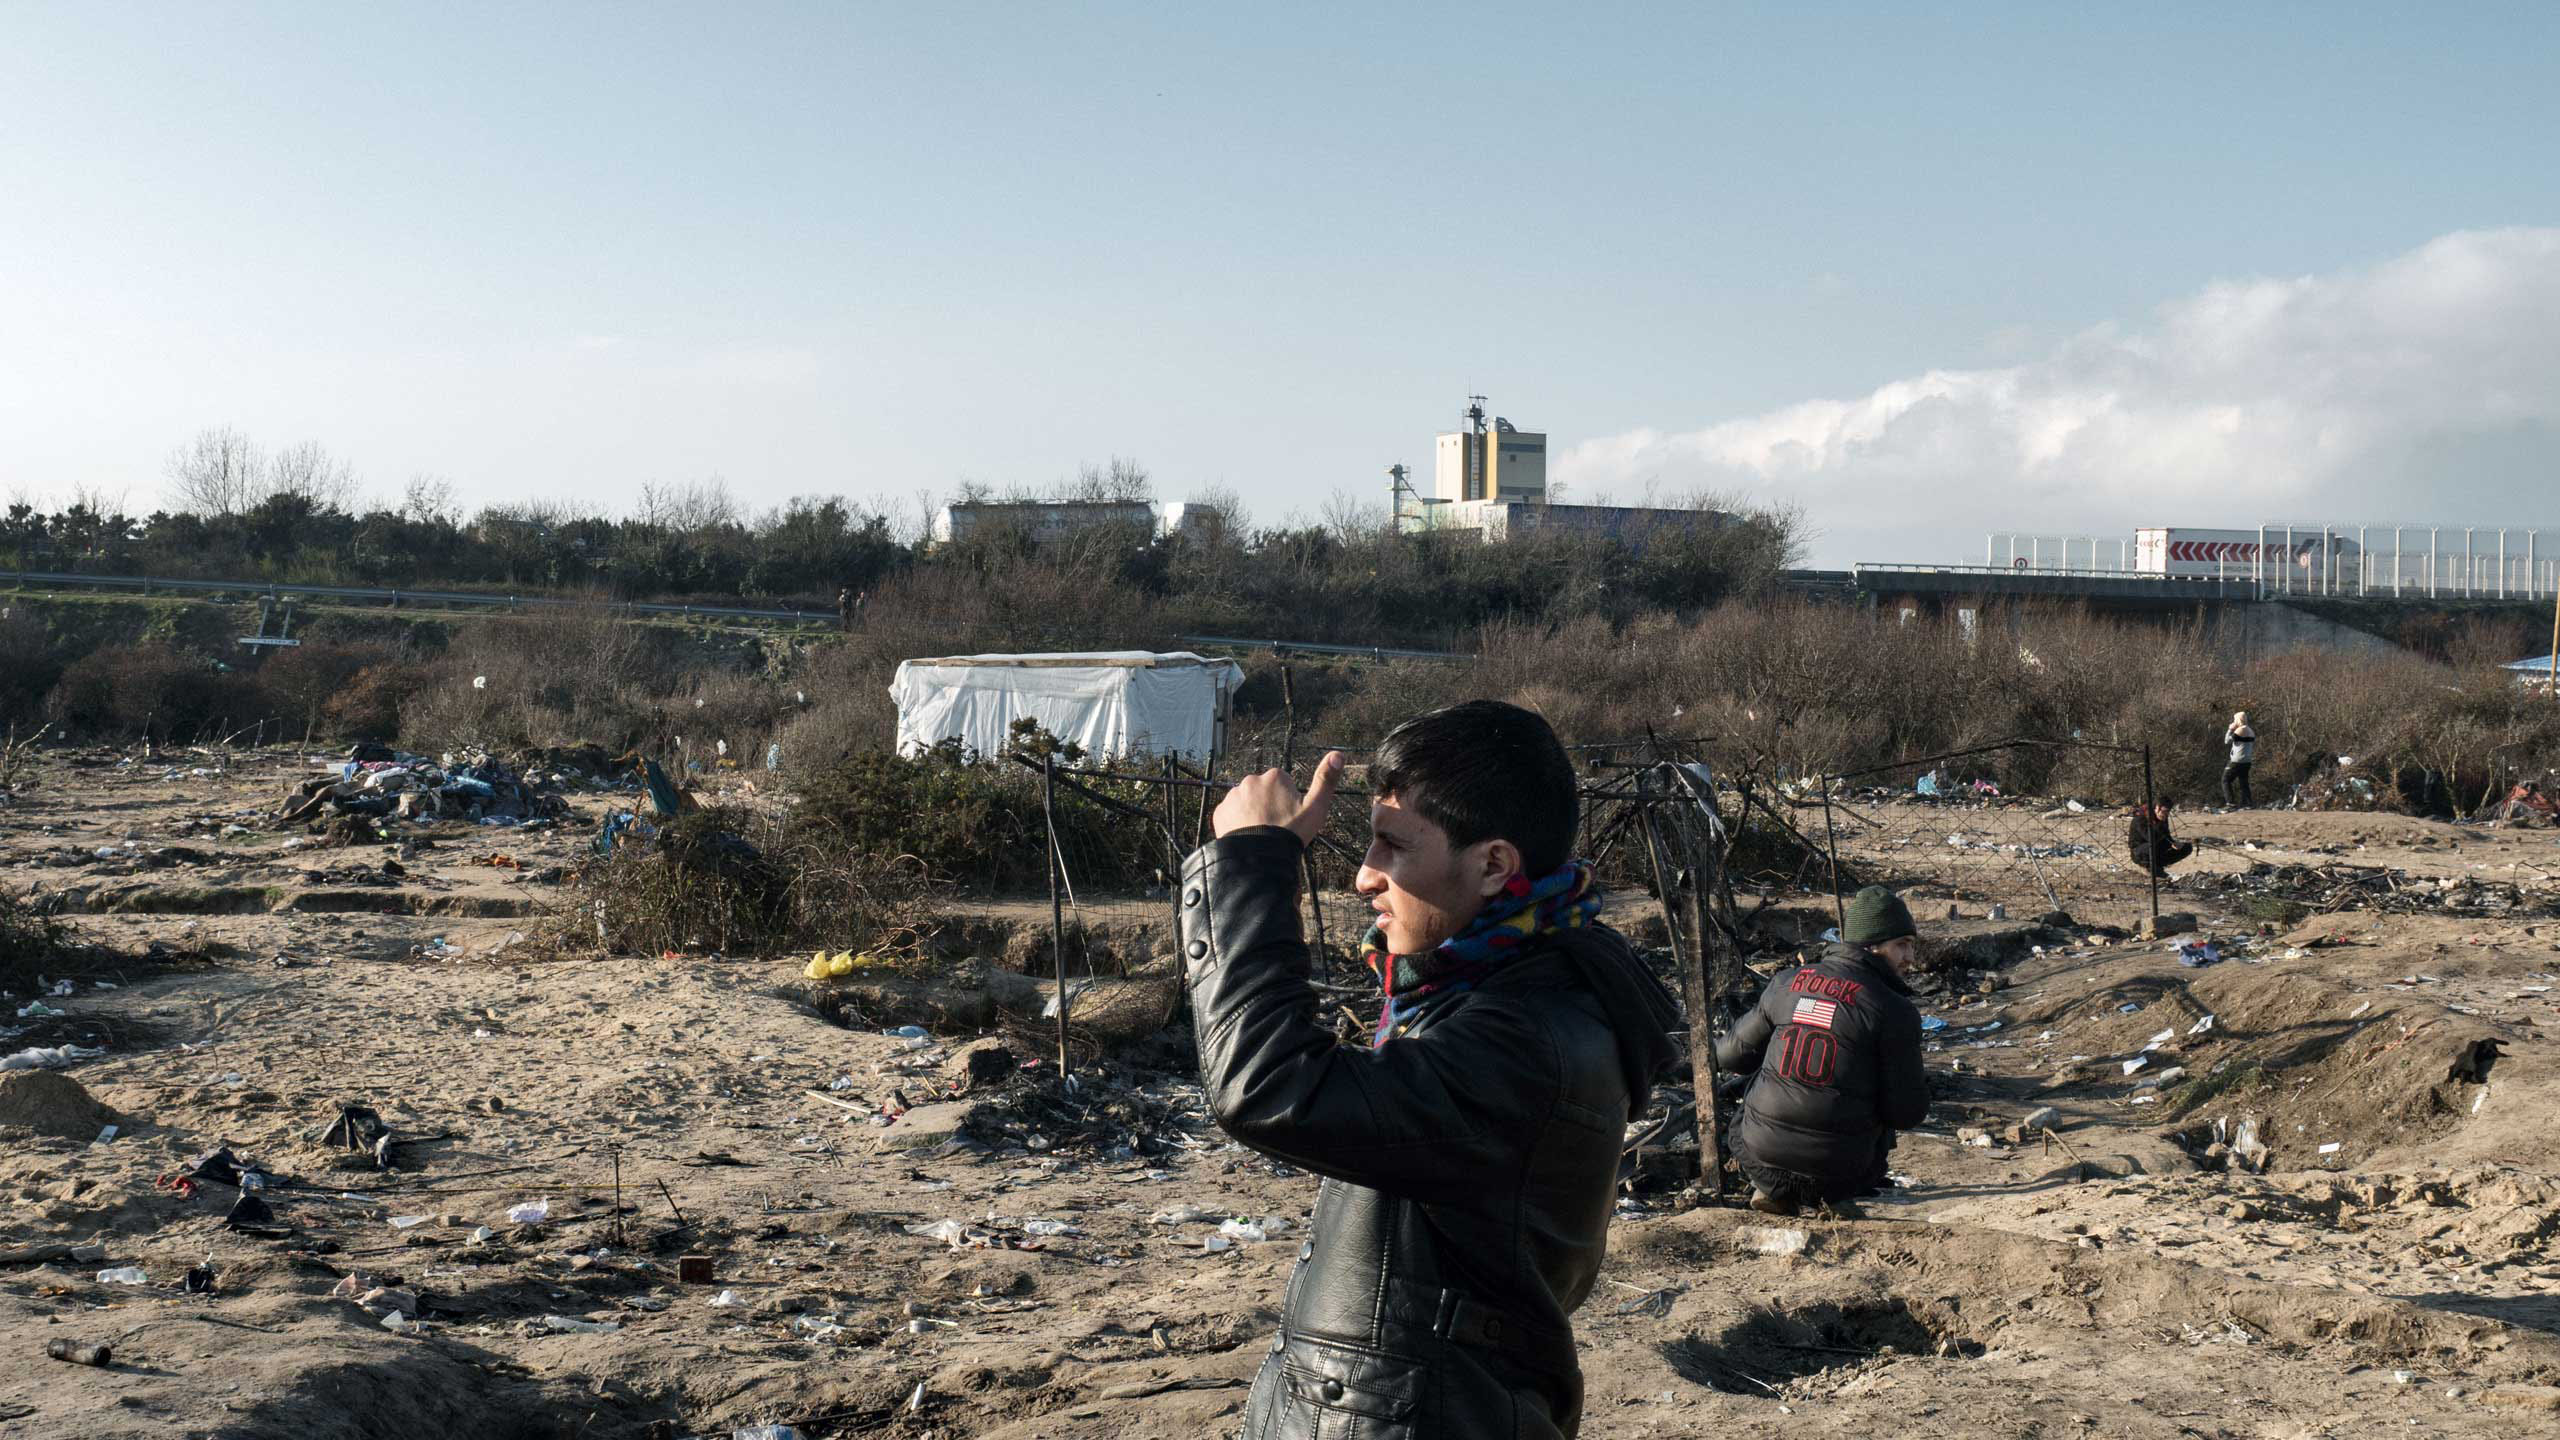 A young man looks out in an area in Calais, France that is being cleared for new housing containers, Jan. 20, 2016.